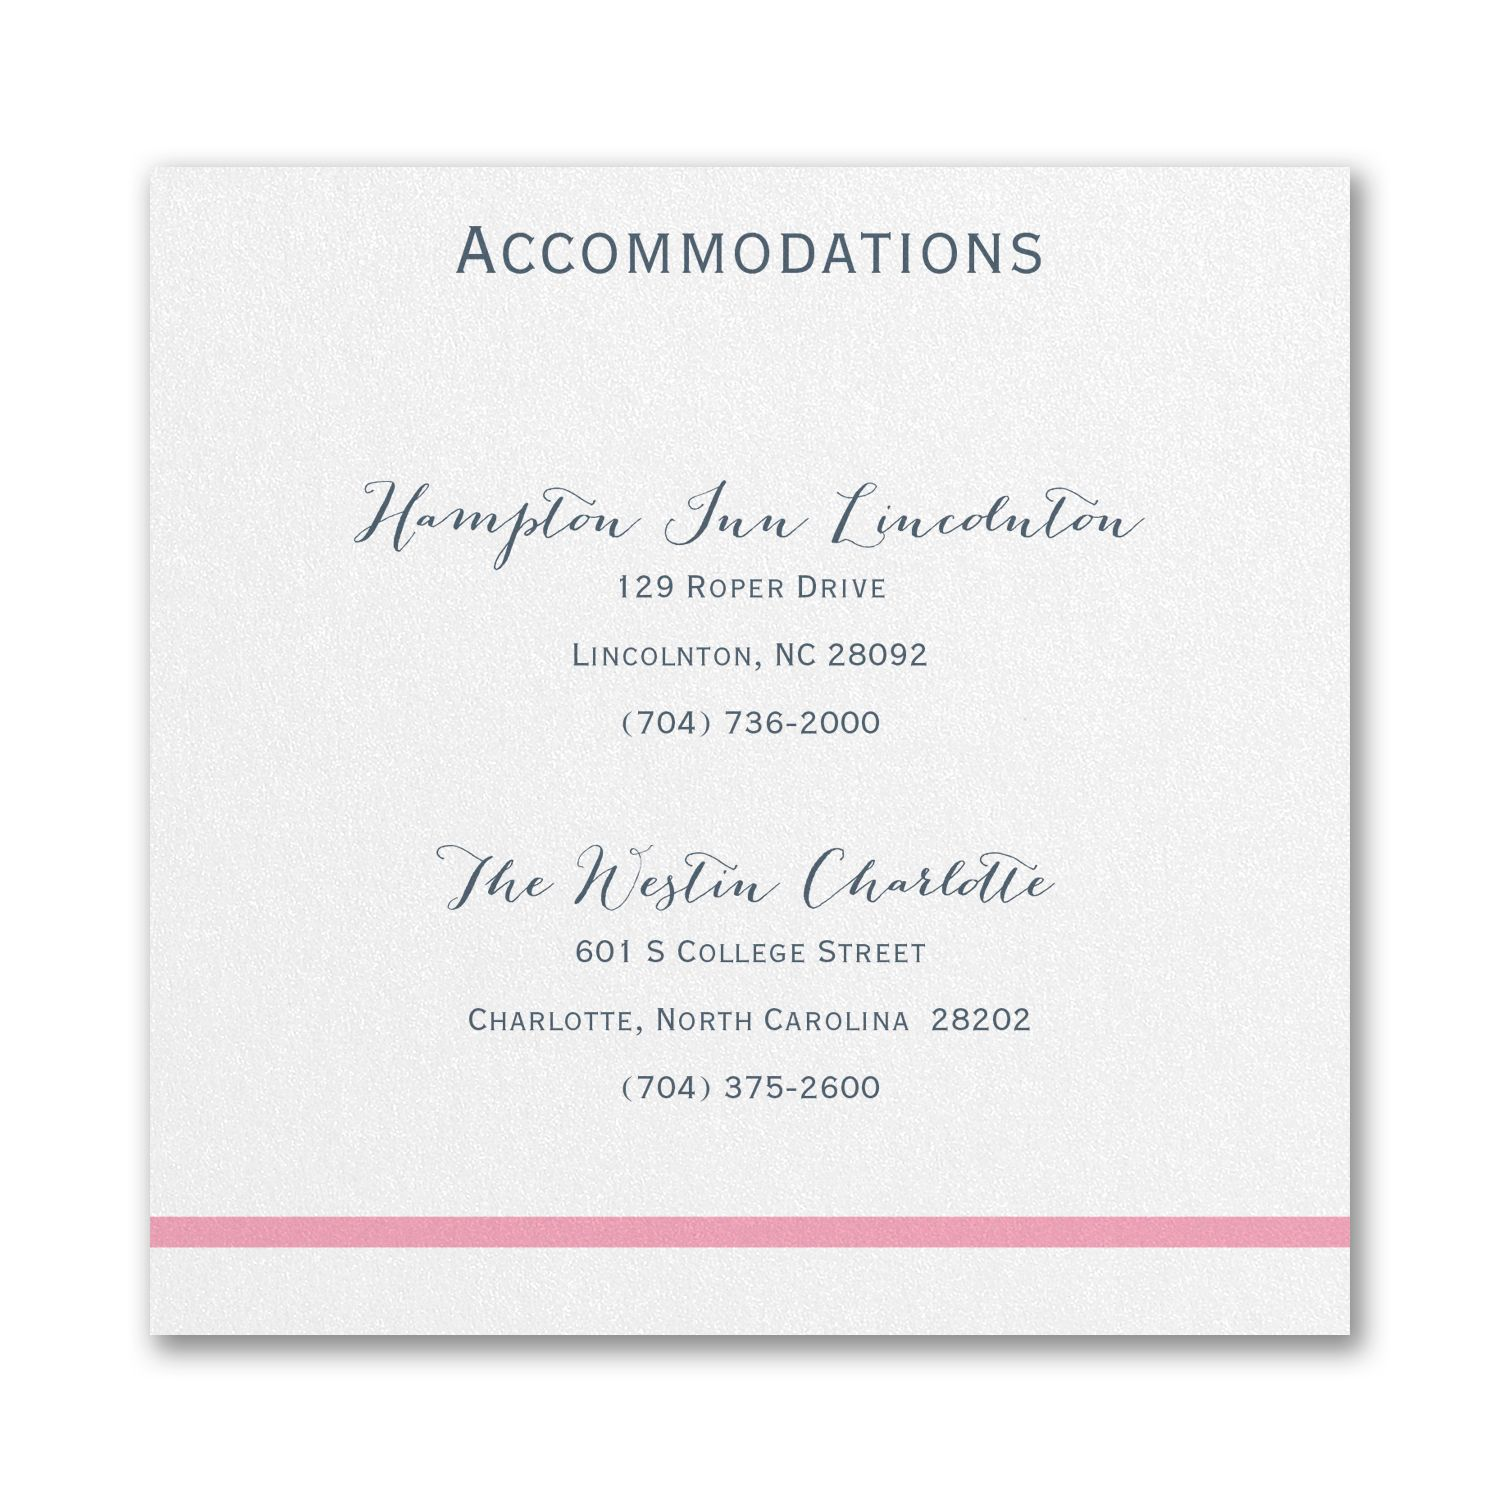 Loving Embrace - Accommodation Card. Available at Persnickety ...